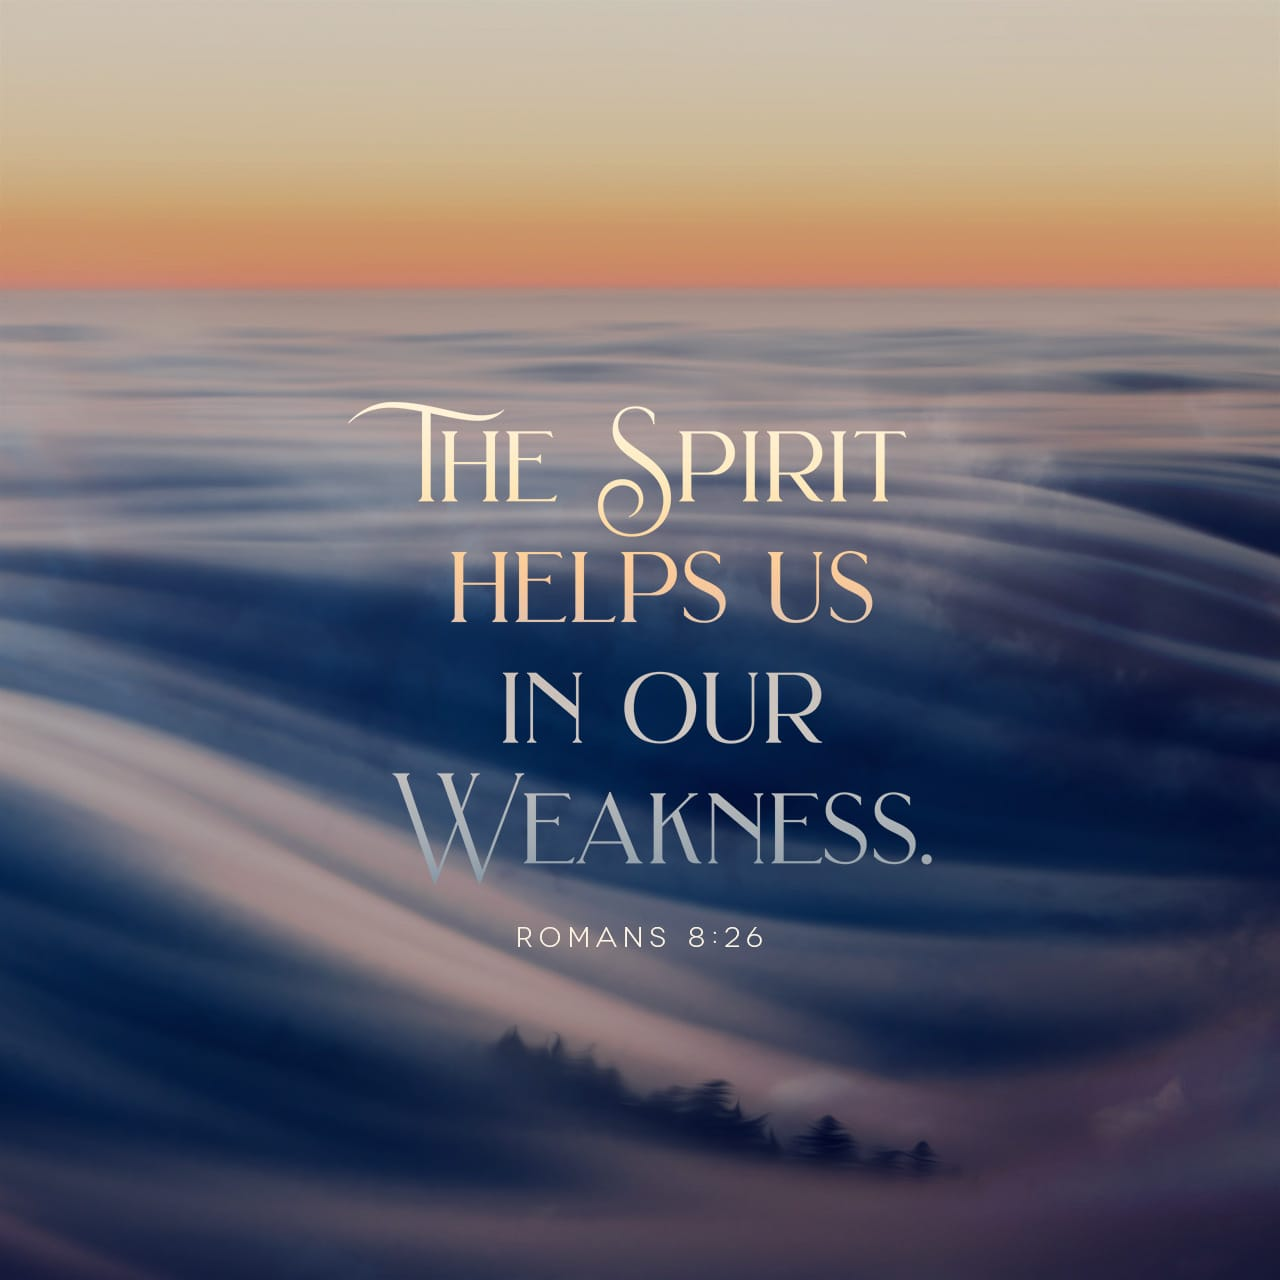 Romans 8:26 Likewise the Spirit also helpeth our infirmities: for we know not what we should pray for as we ought: but the Spirit itself maketh intercession for us with groanings which cannot be uttered. | King James Version (KJV) | Download The Bible App Now